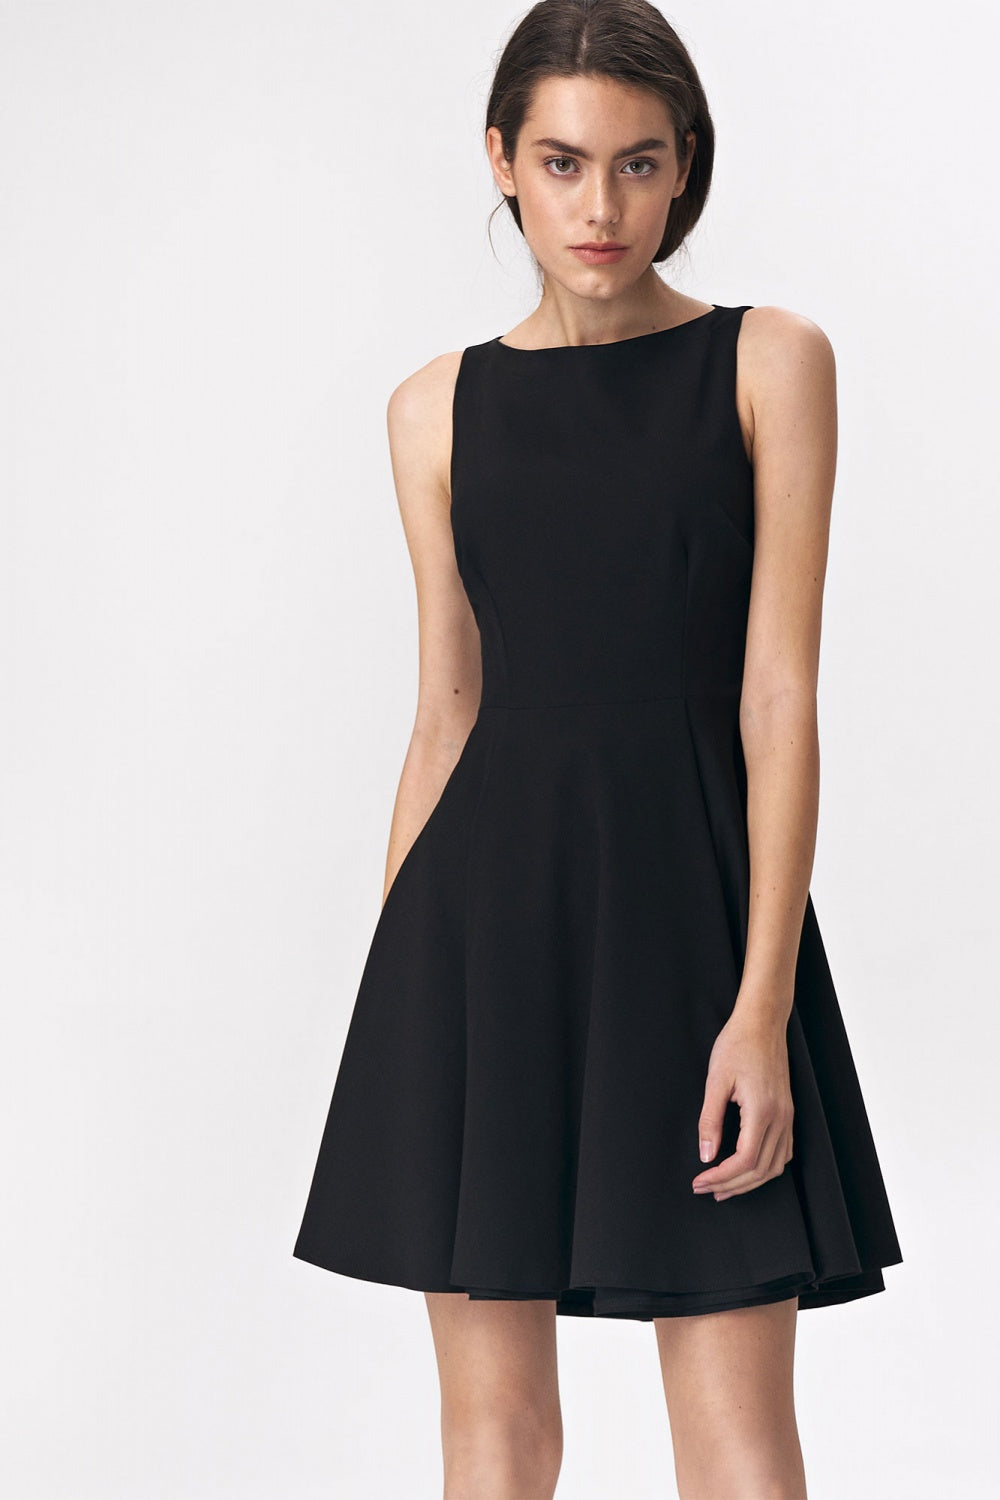 Flared Mini Black Dress 143563